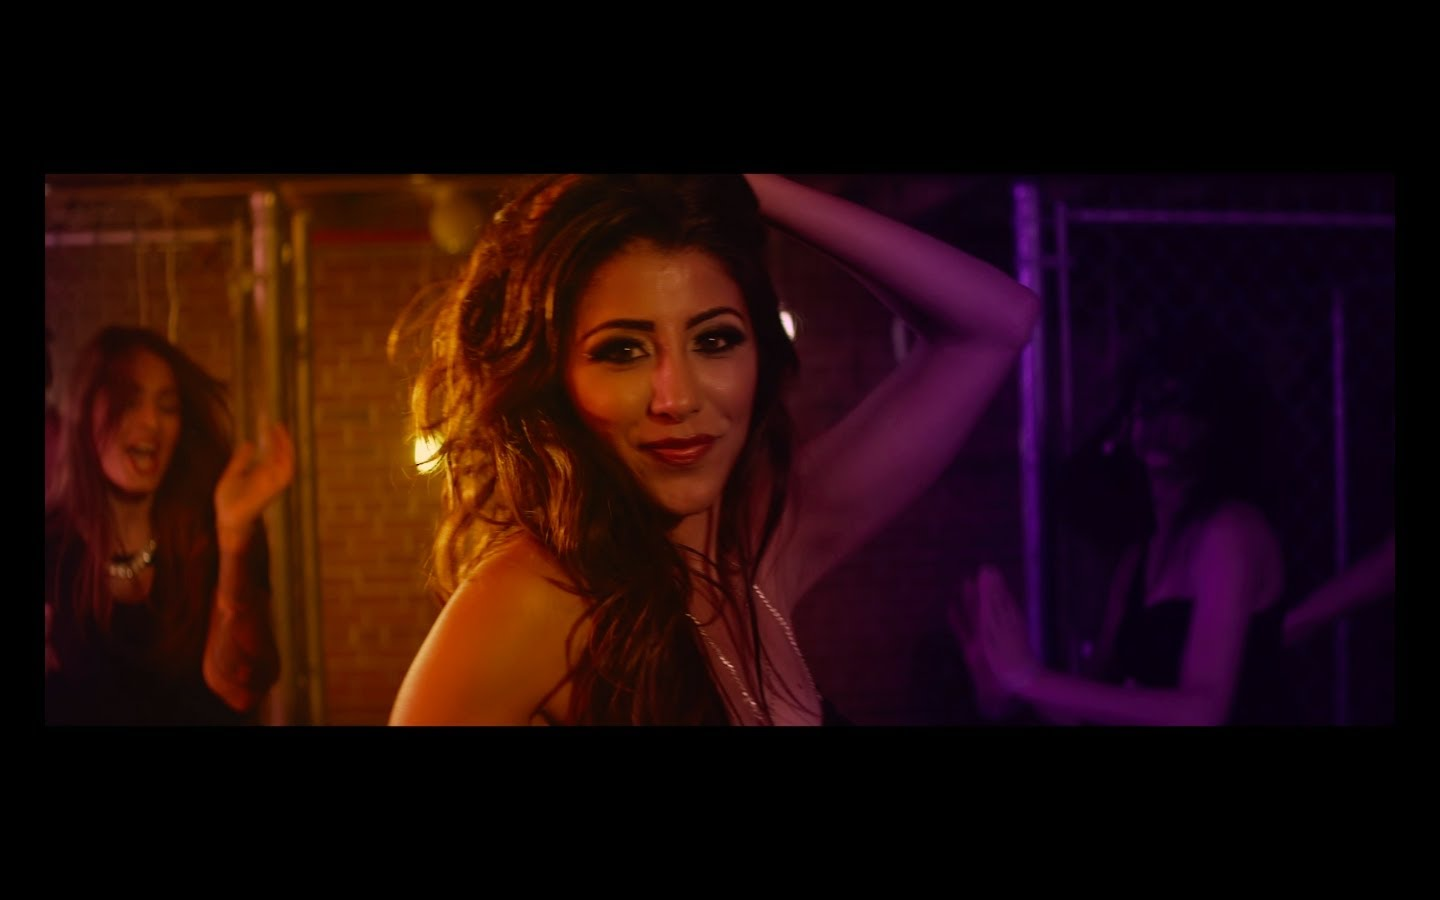 Shilpa Thakur's 'Bombay Nights' will get you pumped up like nothing else!